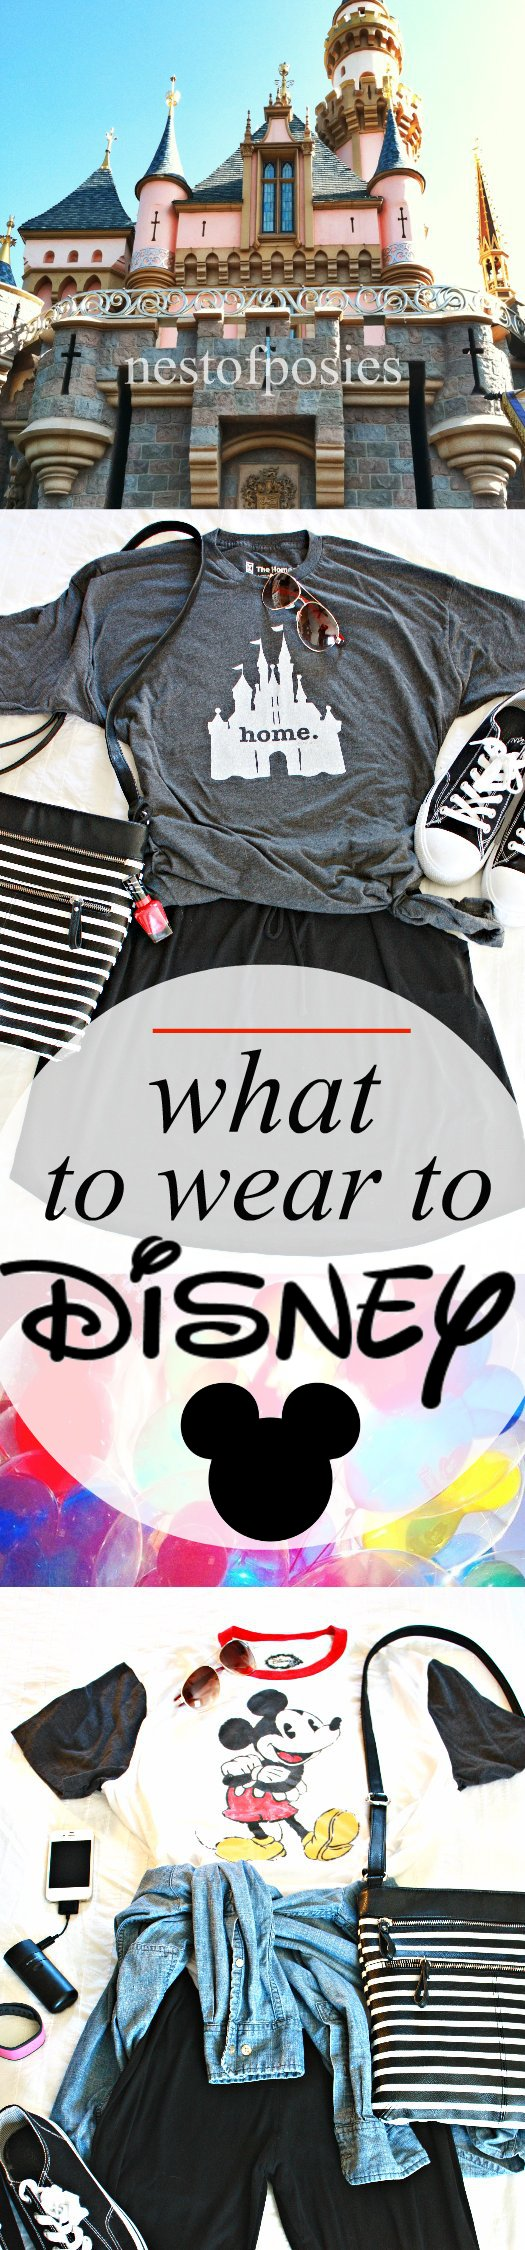 what-to-wear-to-disney-2